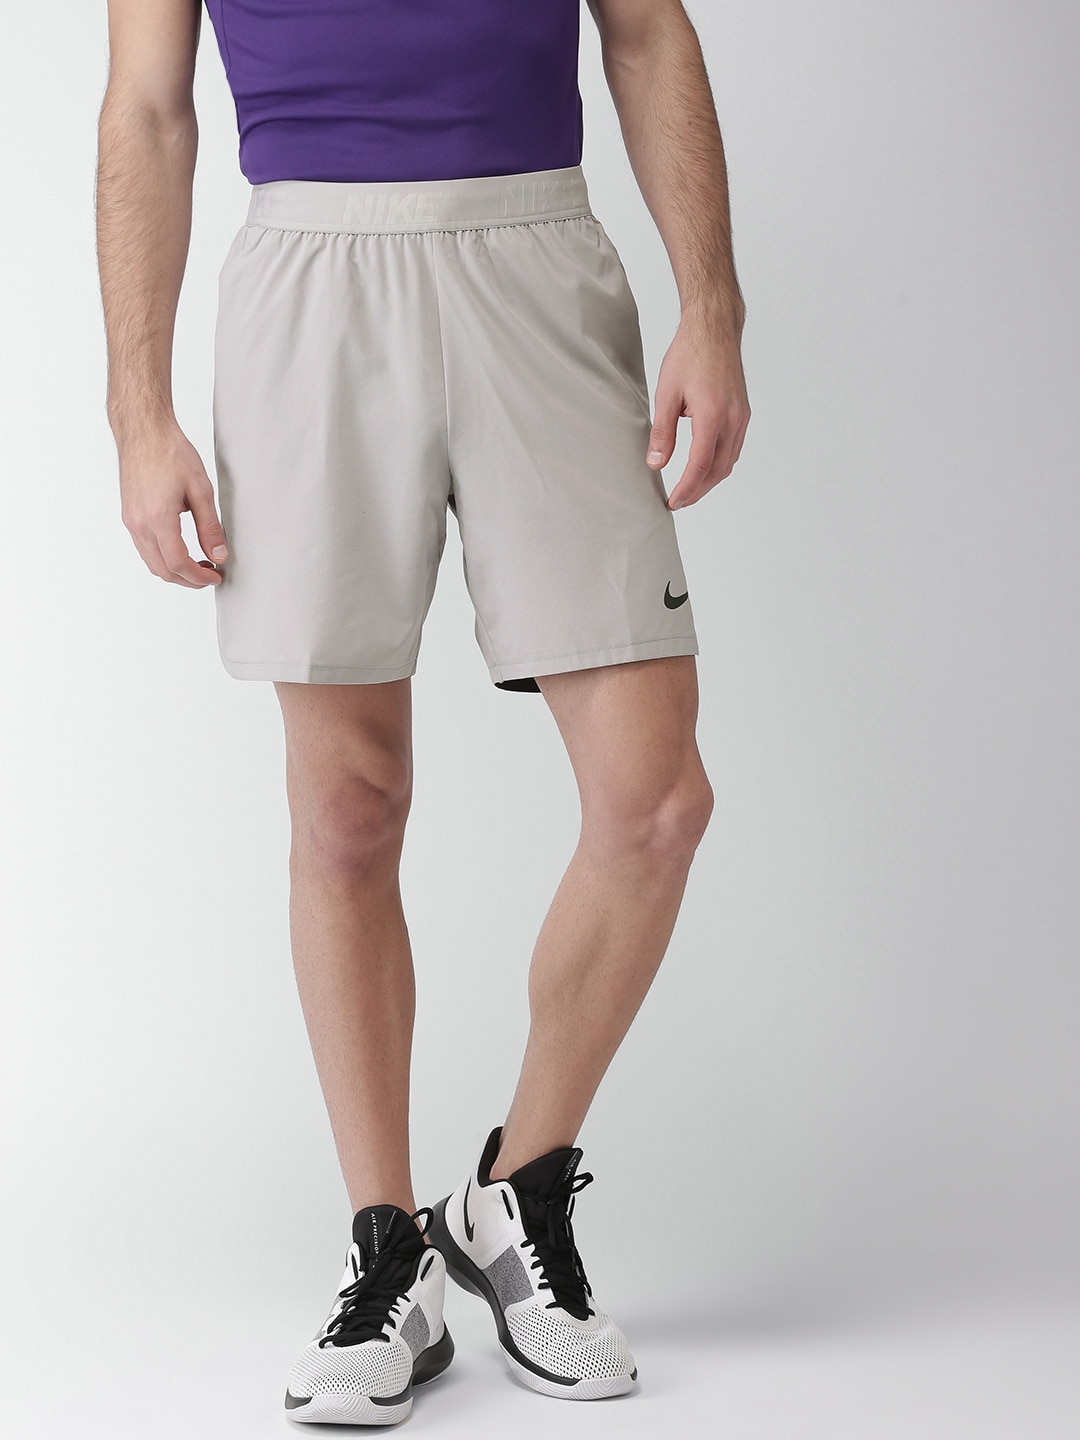 the latest 07cc8 417fe Mens Shorts Nike - Buy Mens Shorts Nike online in India